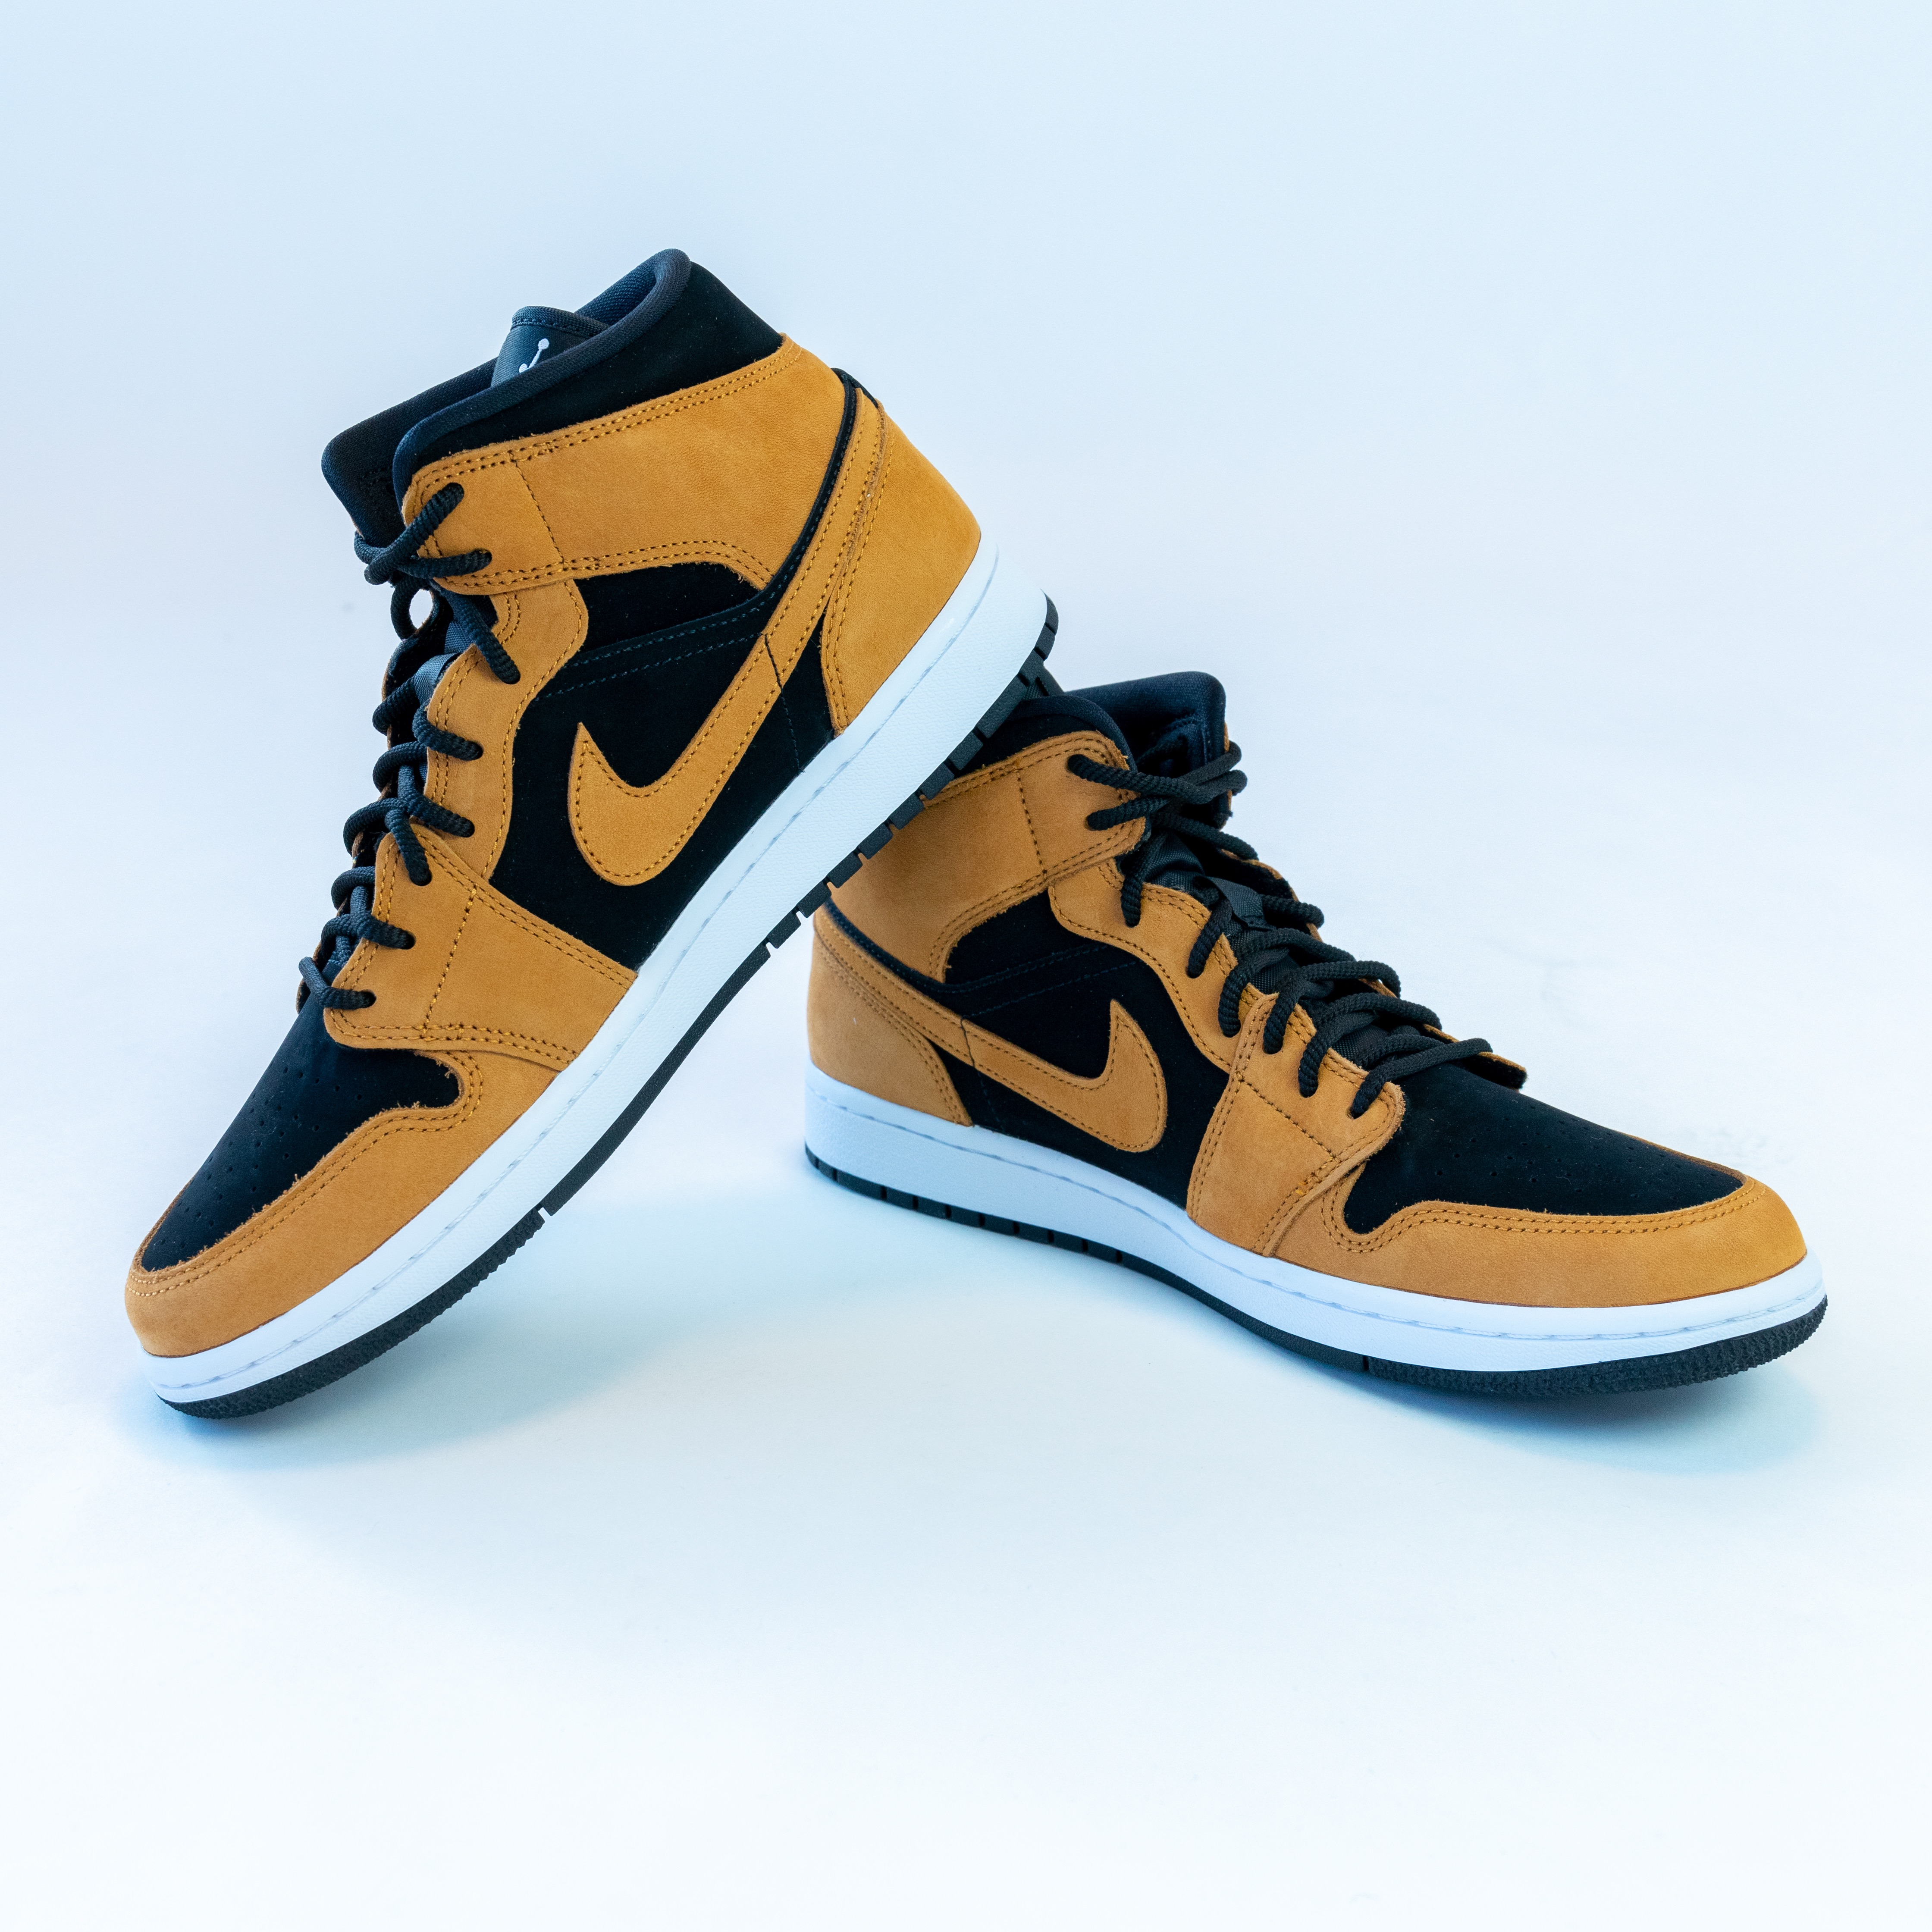 Product picture for Decked Out featuring a pair of brown Jordan shoes.